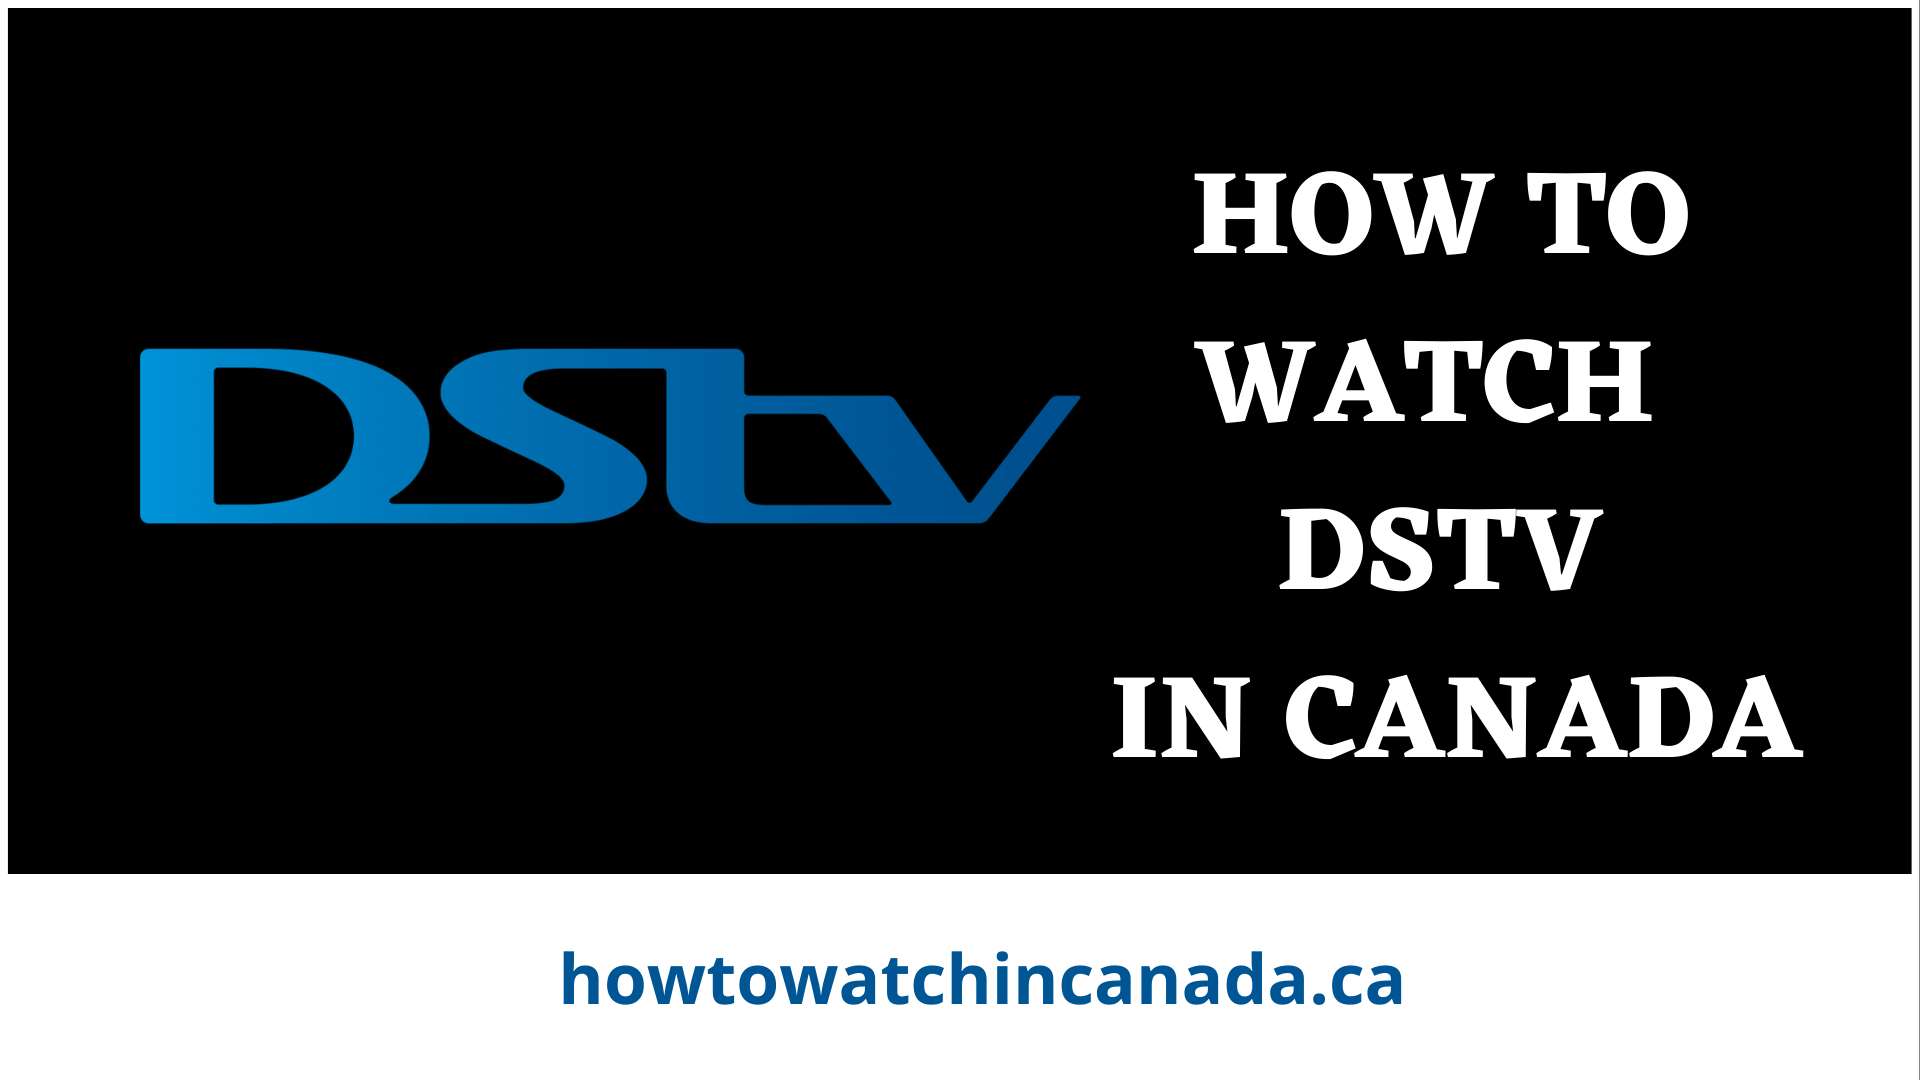 dstv-feat-how-to-watch-in-canada